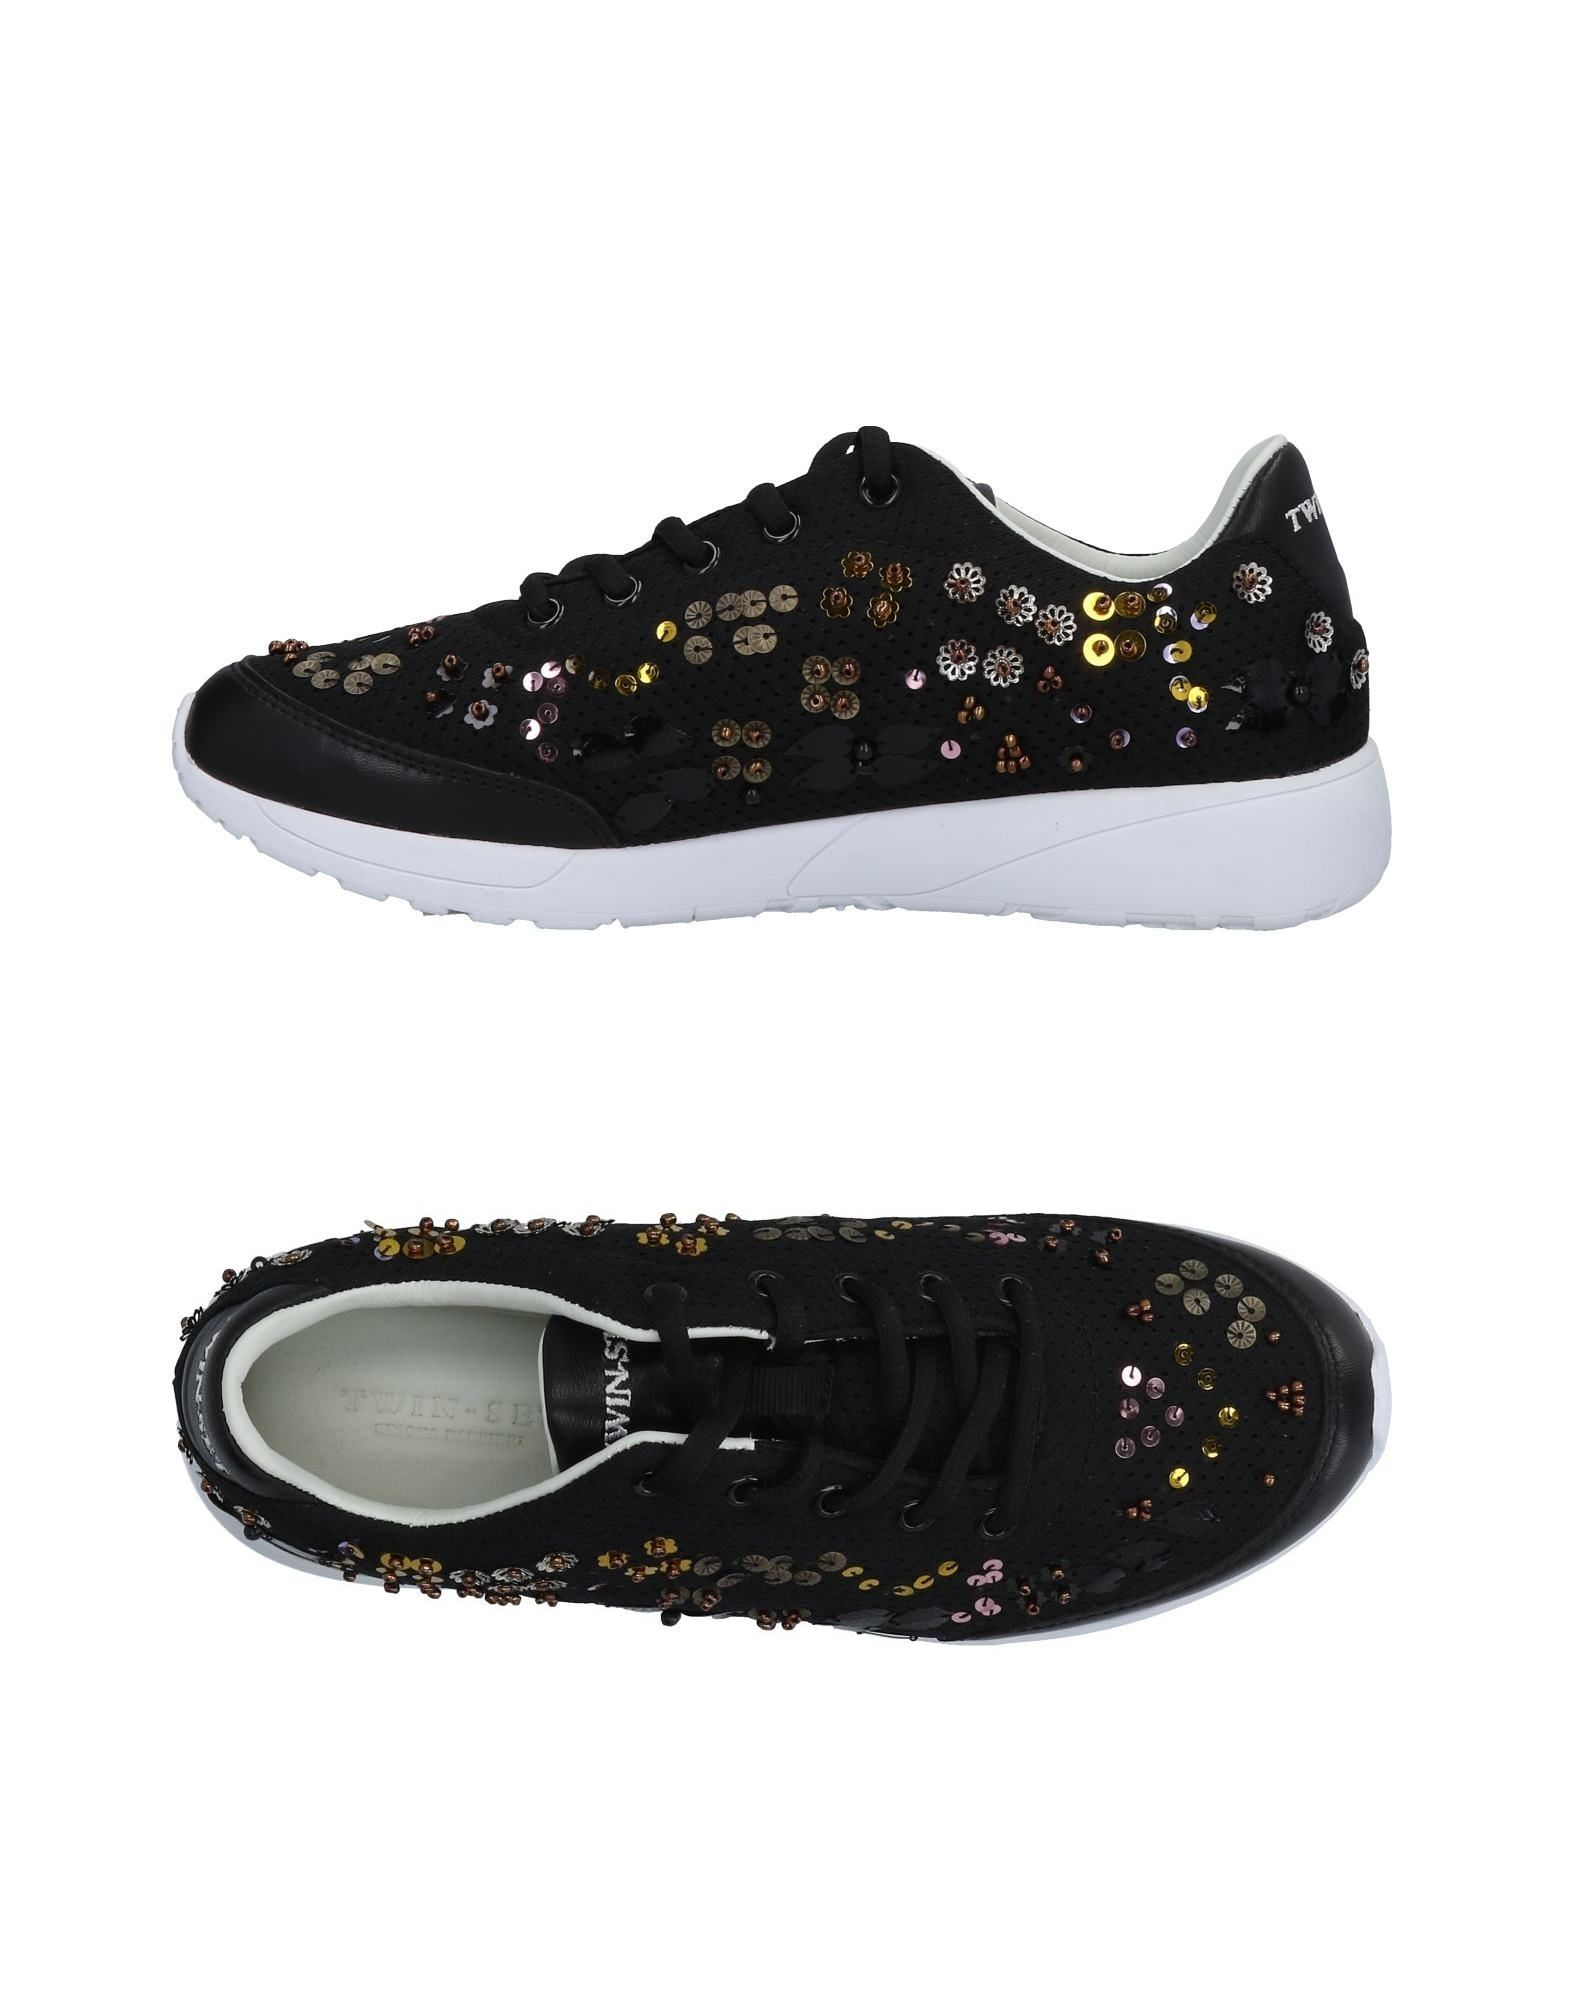 Twin-Set Simona Barbieri Sneakers Barbieri - Women Twin-Set Simona Barbieri Sneakers Sneakers online on  Canada - 11475656MJ c69652